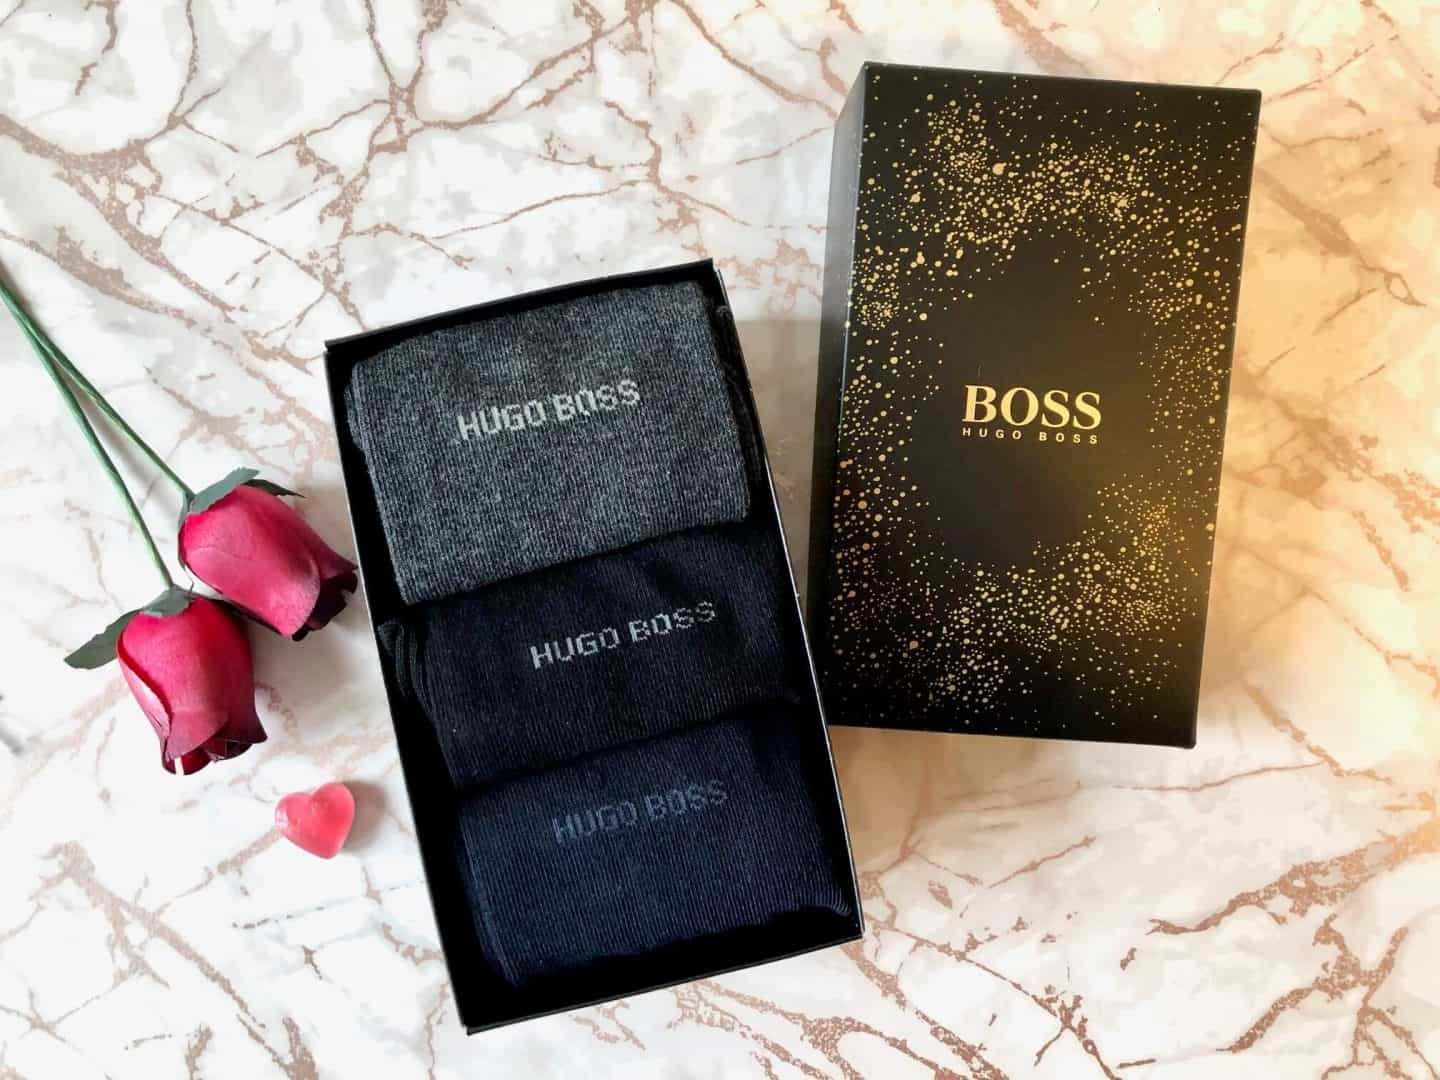 Hugo Boss socks